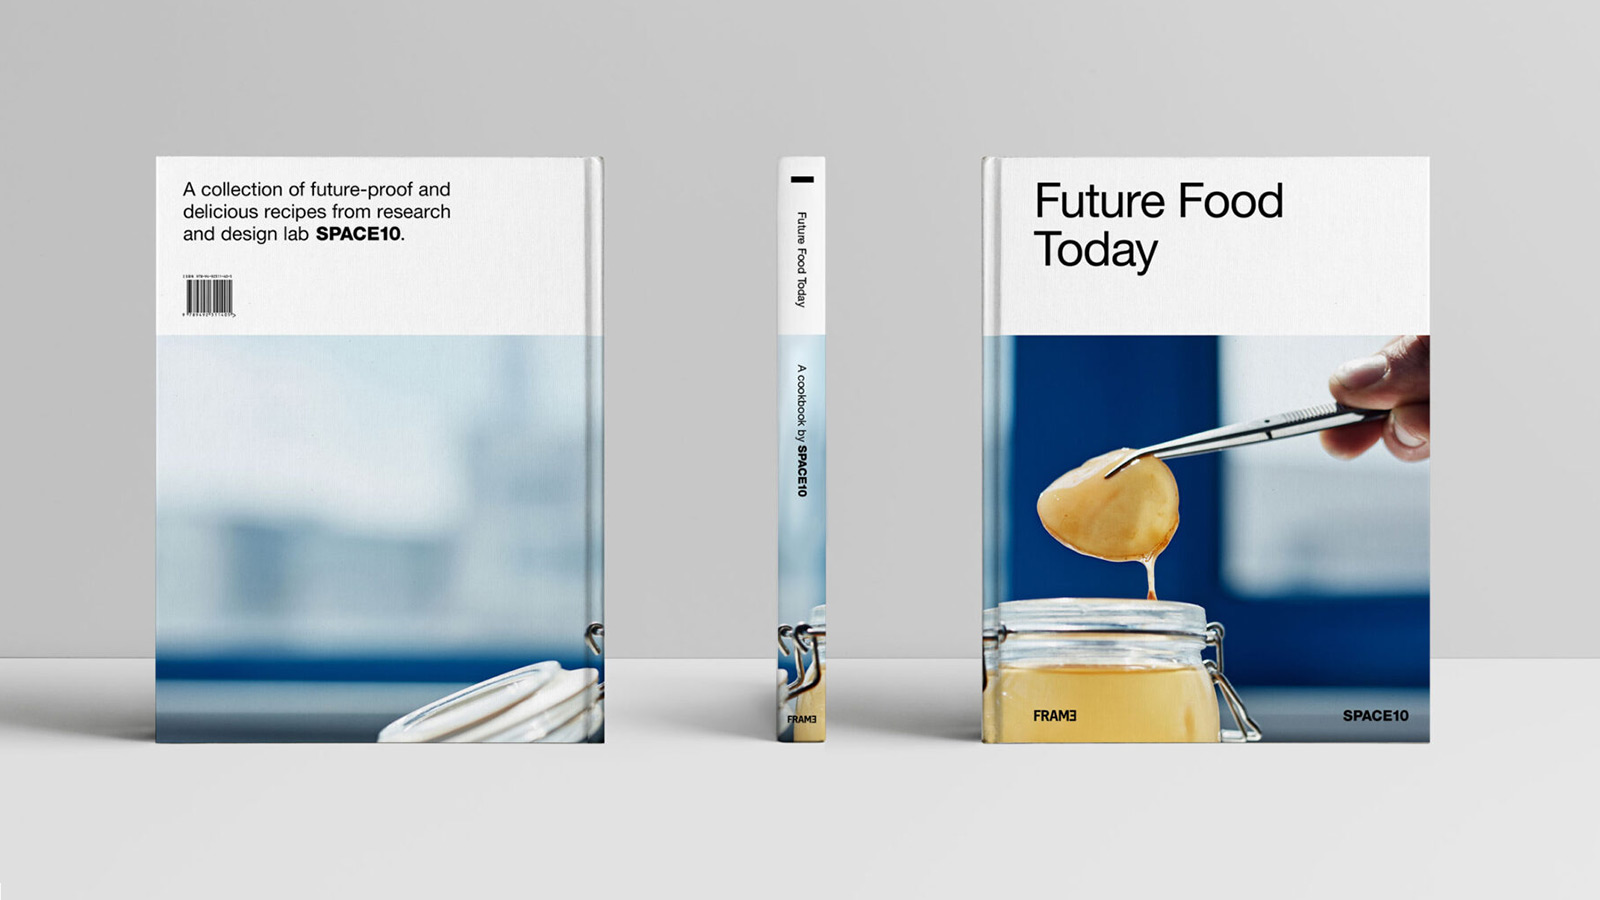 'Future Food Today' by SPACE10